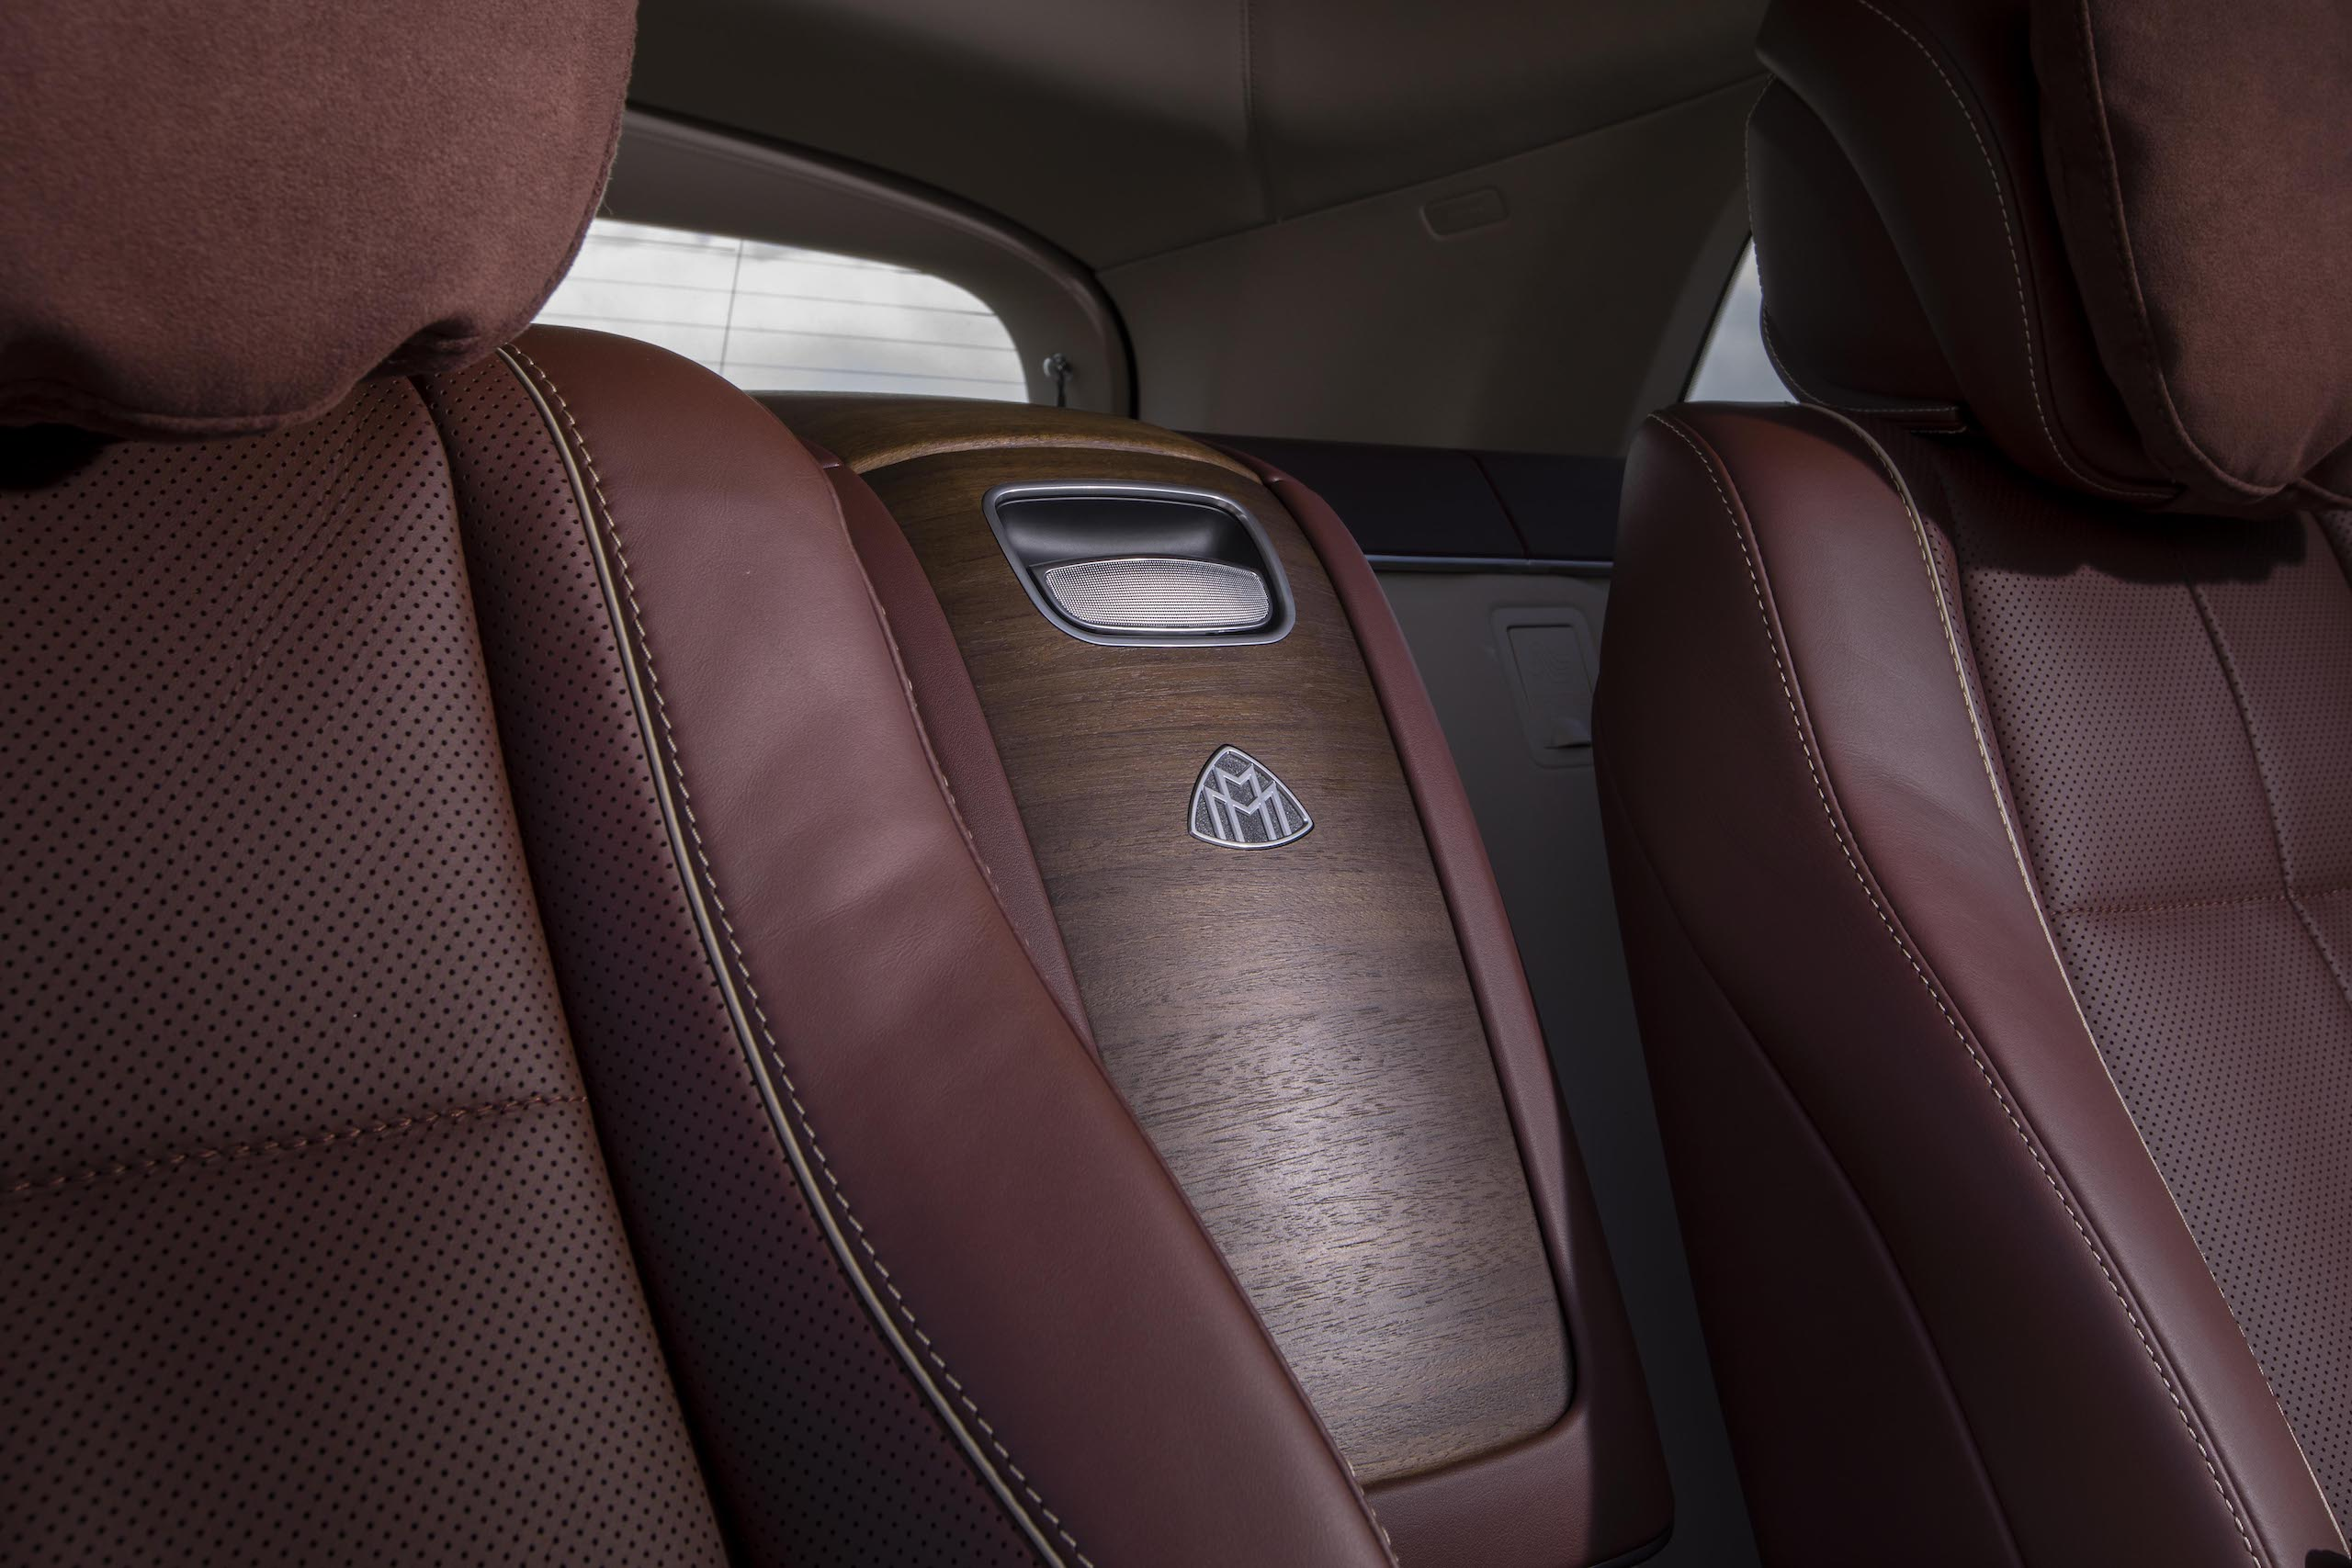 Mercedes-Maybach GLS 600 rear seat console detail